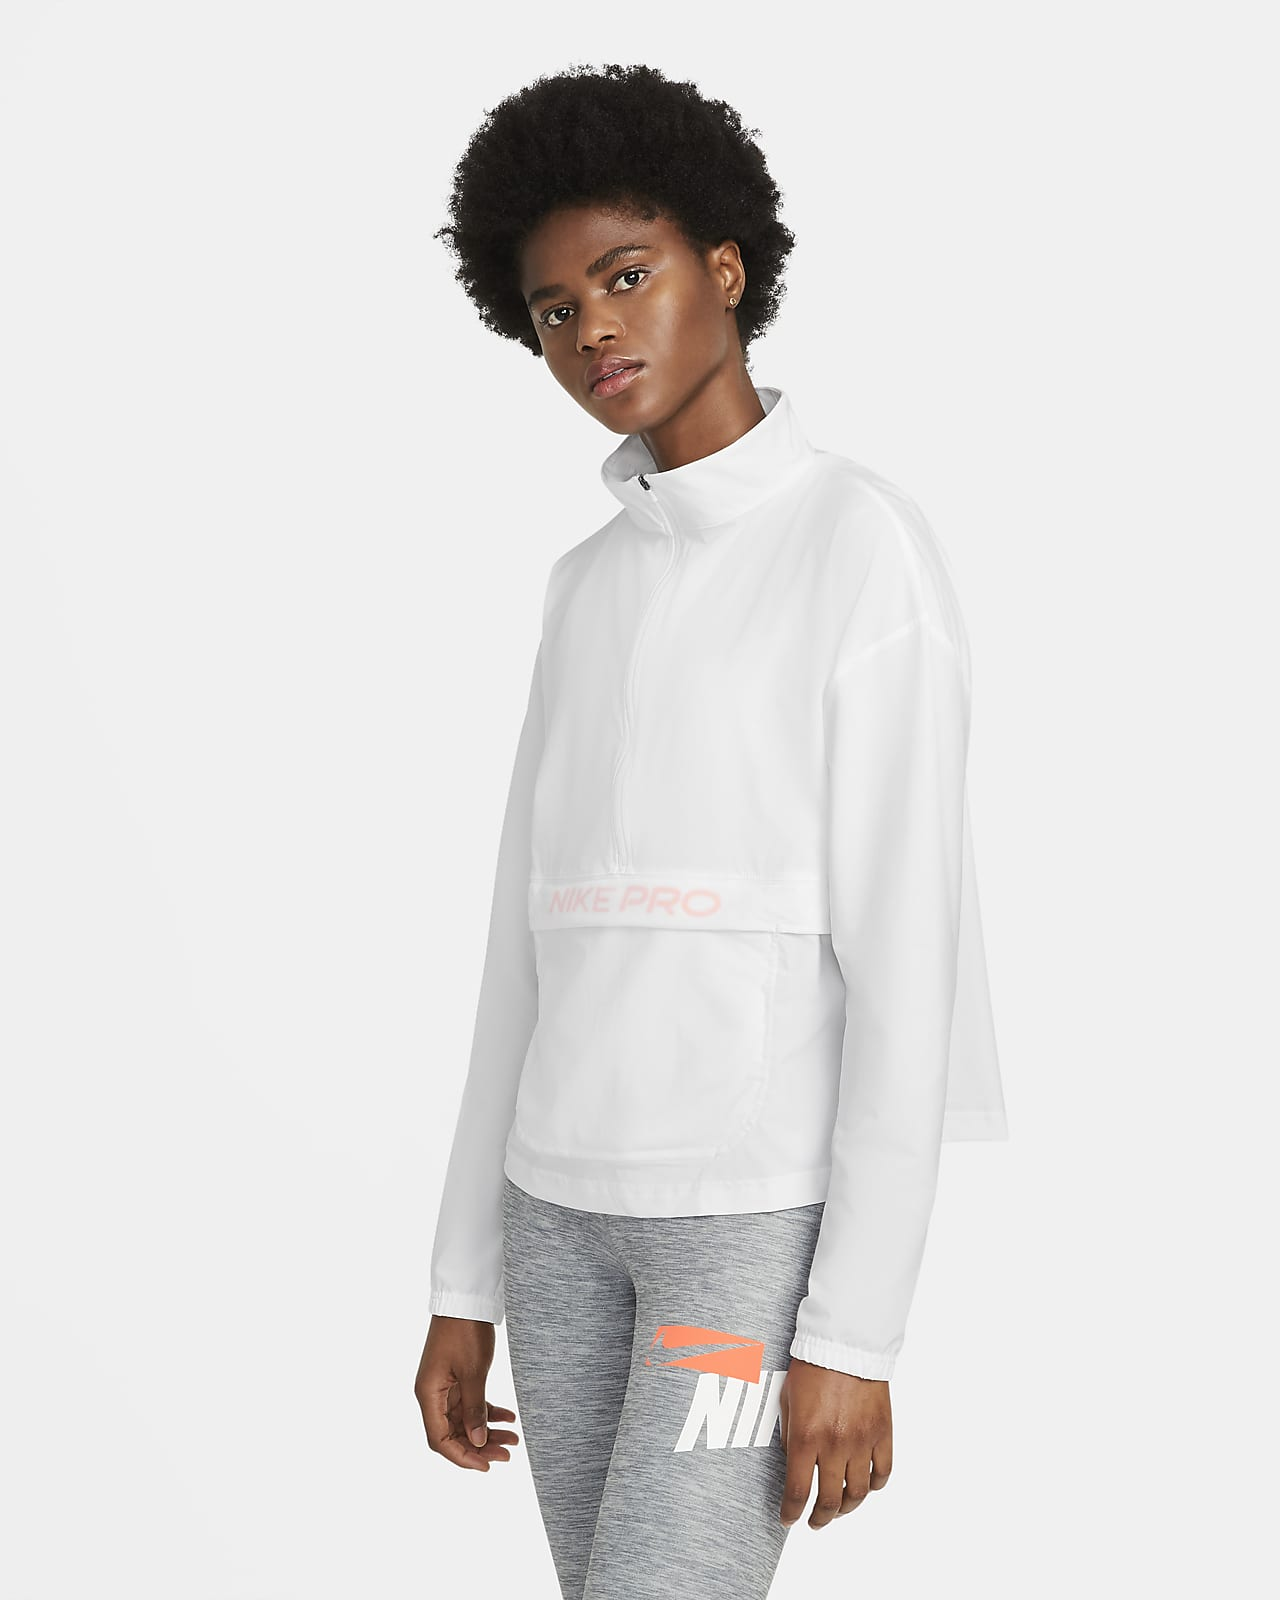 Nike Pro Women's Packable Woven Cover-Up